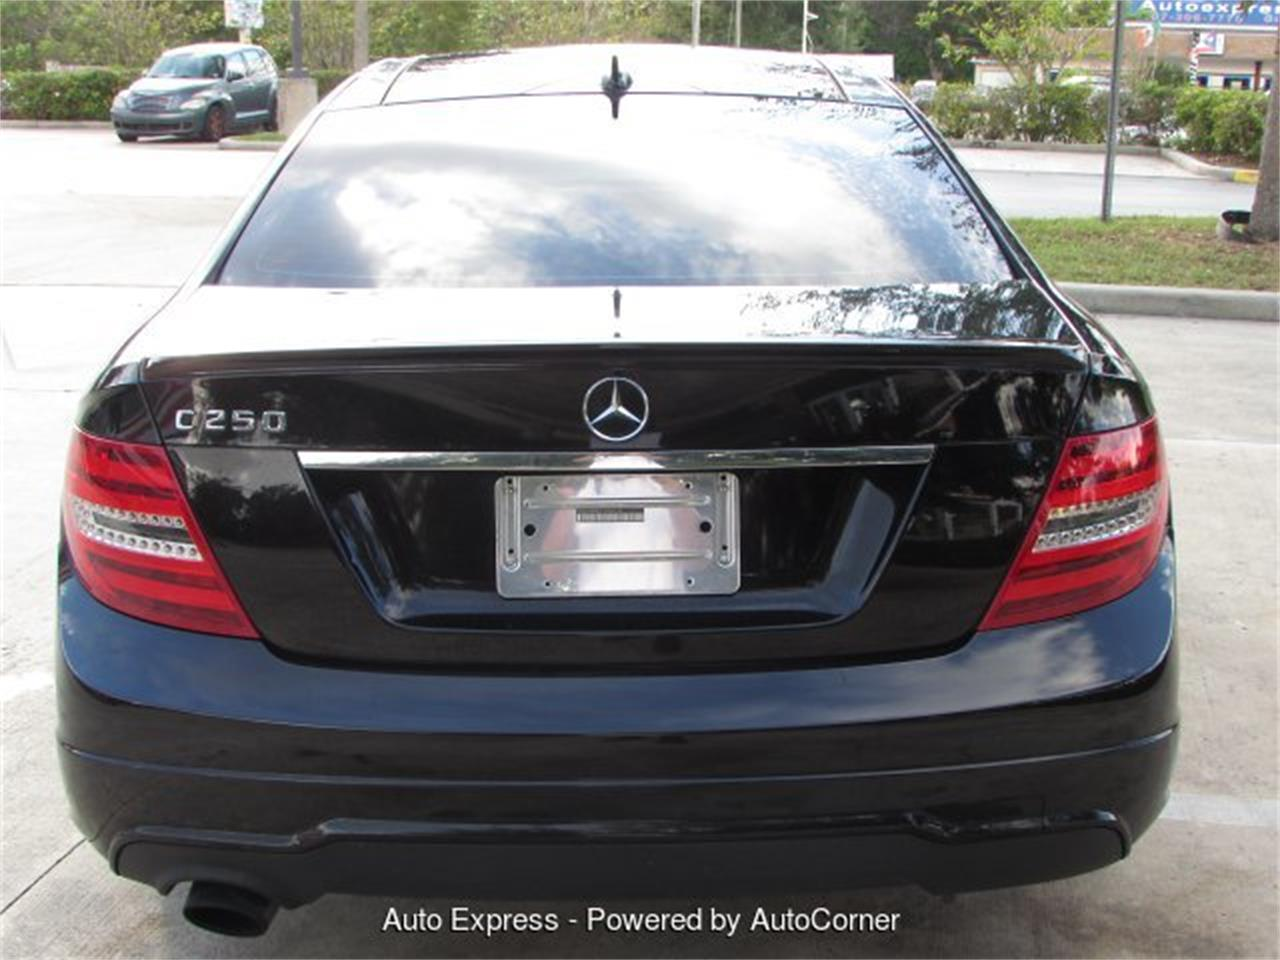 2013 Mercedes-Benz C250 for sale in Orlando, FL – photo 7